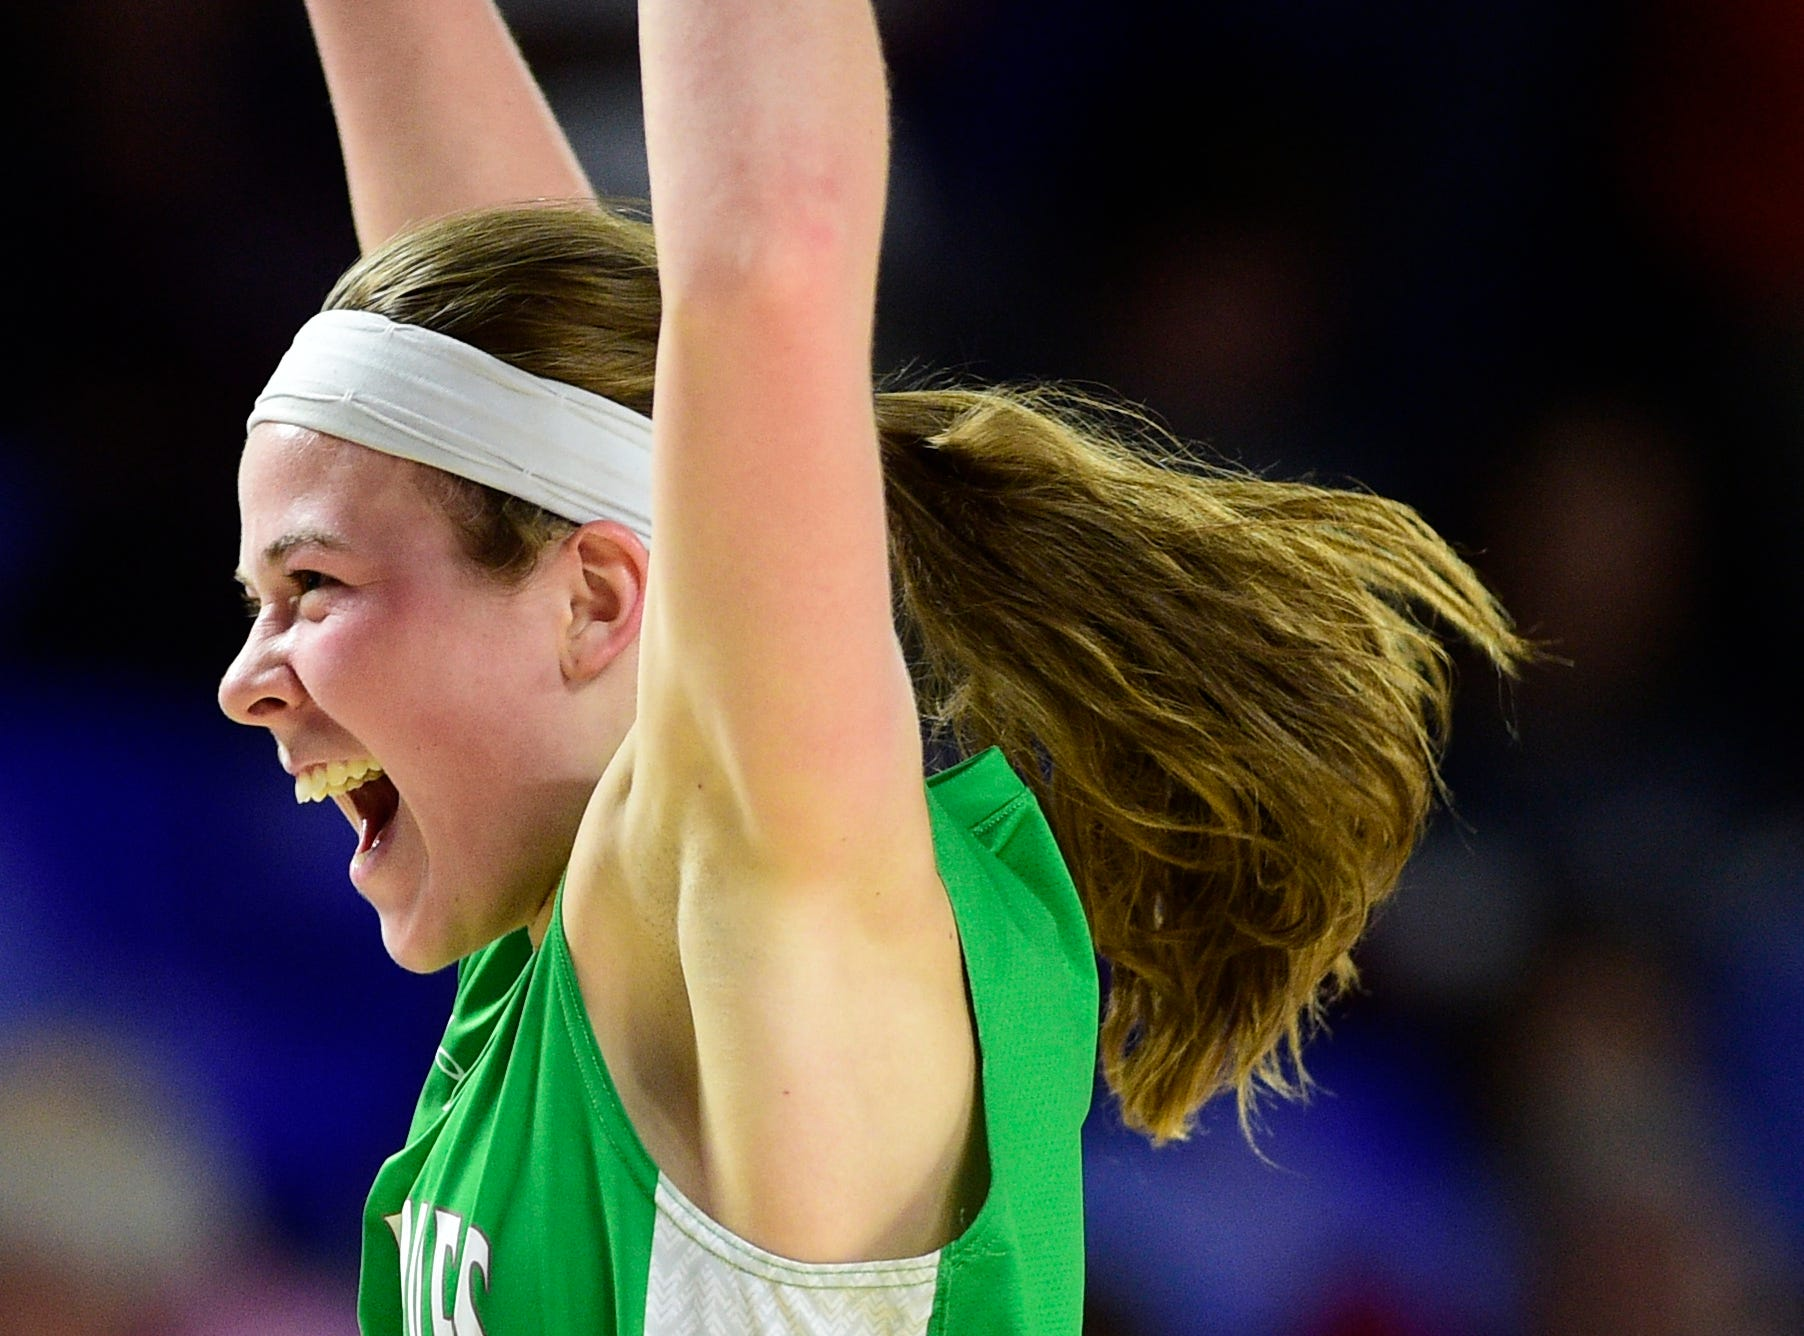 Midway's Caitlyn Ross (1) reacts after defeating Eagleville at the TSSAA girls state tournament at the Murphy Center in Murfreesboro, Tennessee on Thursday, March 7, 2019.